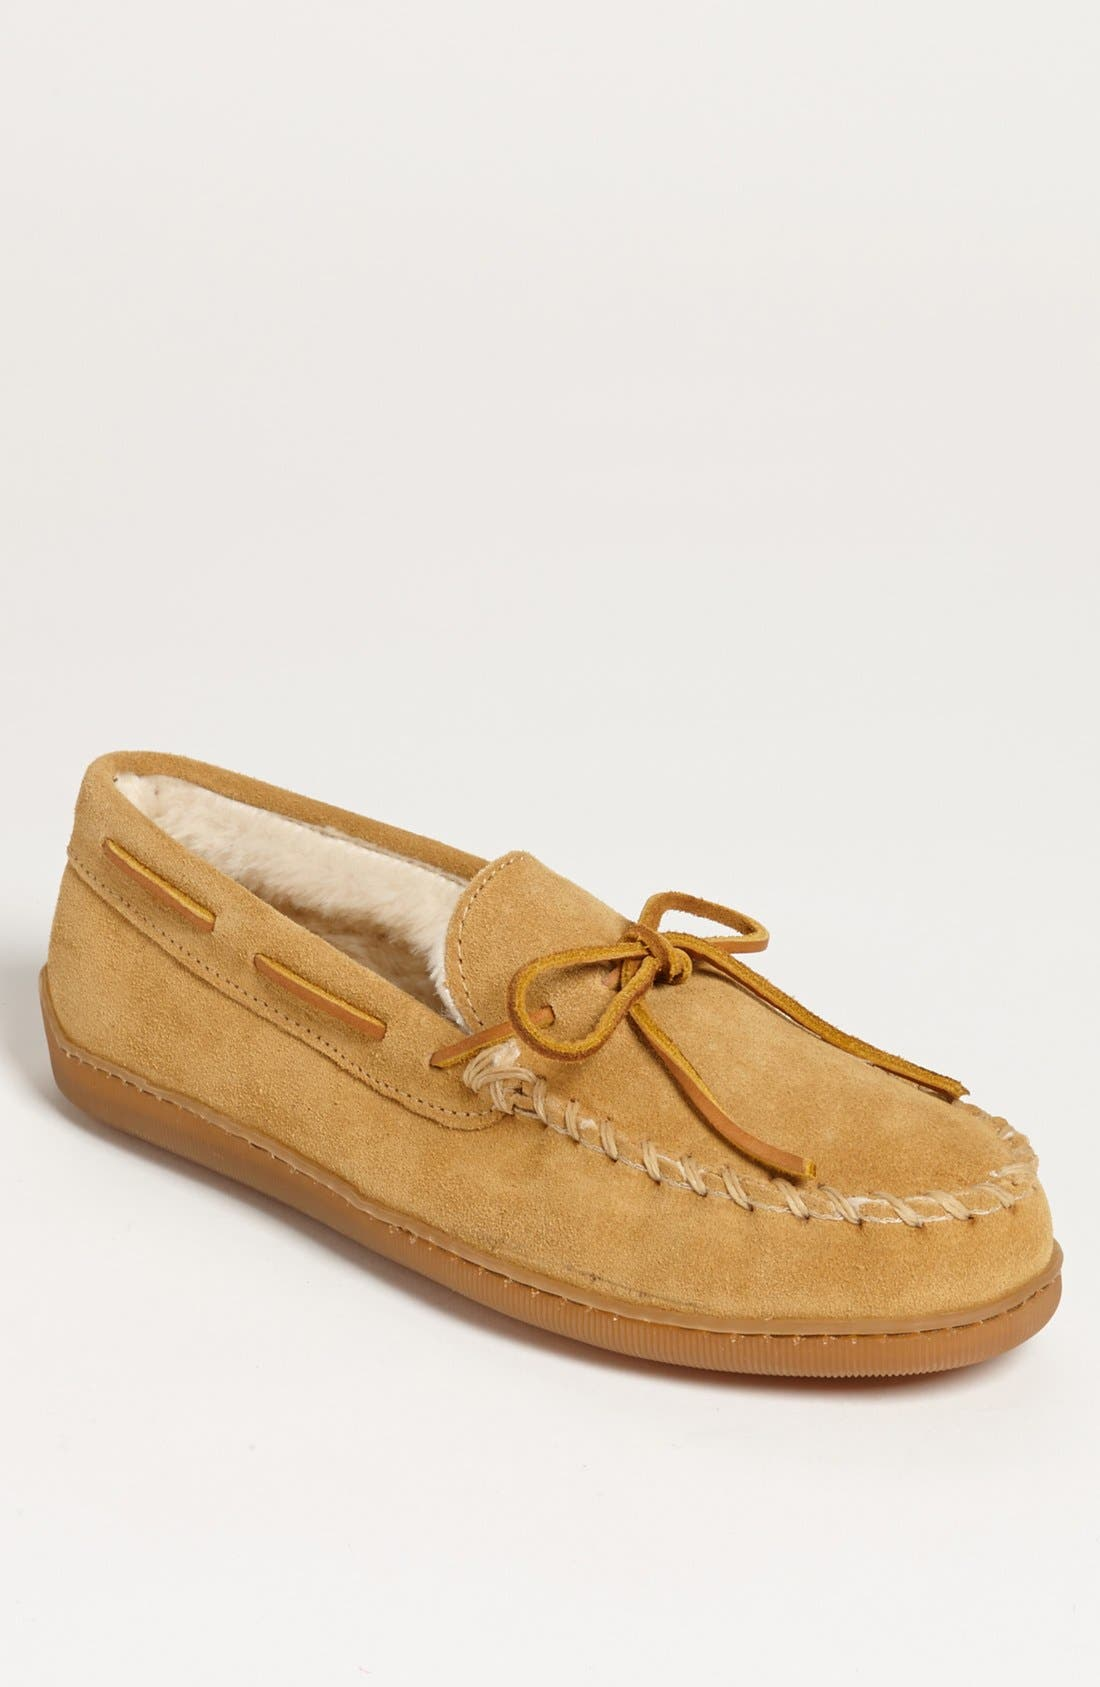 MINNETONKA, Suede Moccasin, Main thumbnail 1, color, TAN SUEDE